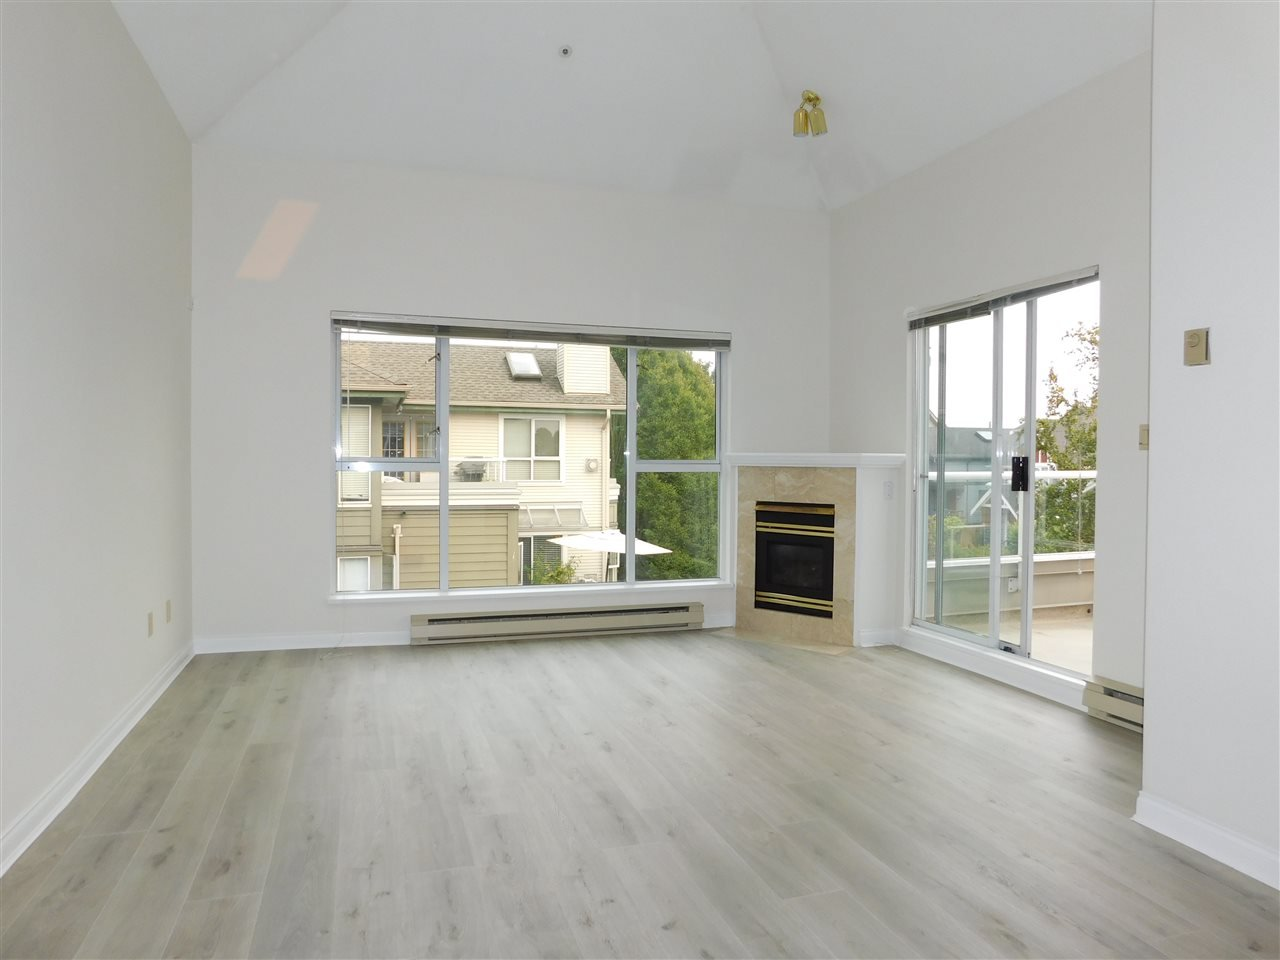 """Main Photo: 414 3480 MAIN Street in Vancouver: Main Condo for sale in """"NEWPORT"""" (Vancouver East)  : MLS®# R2499070"""